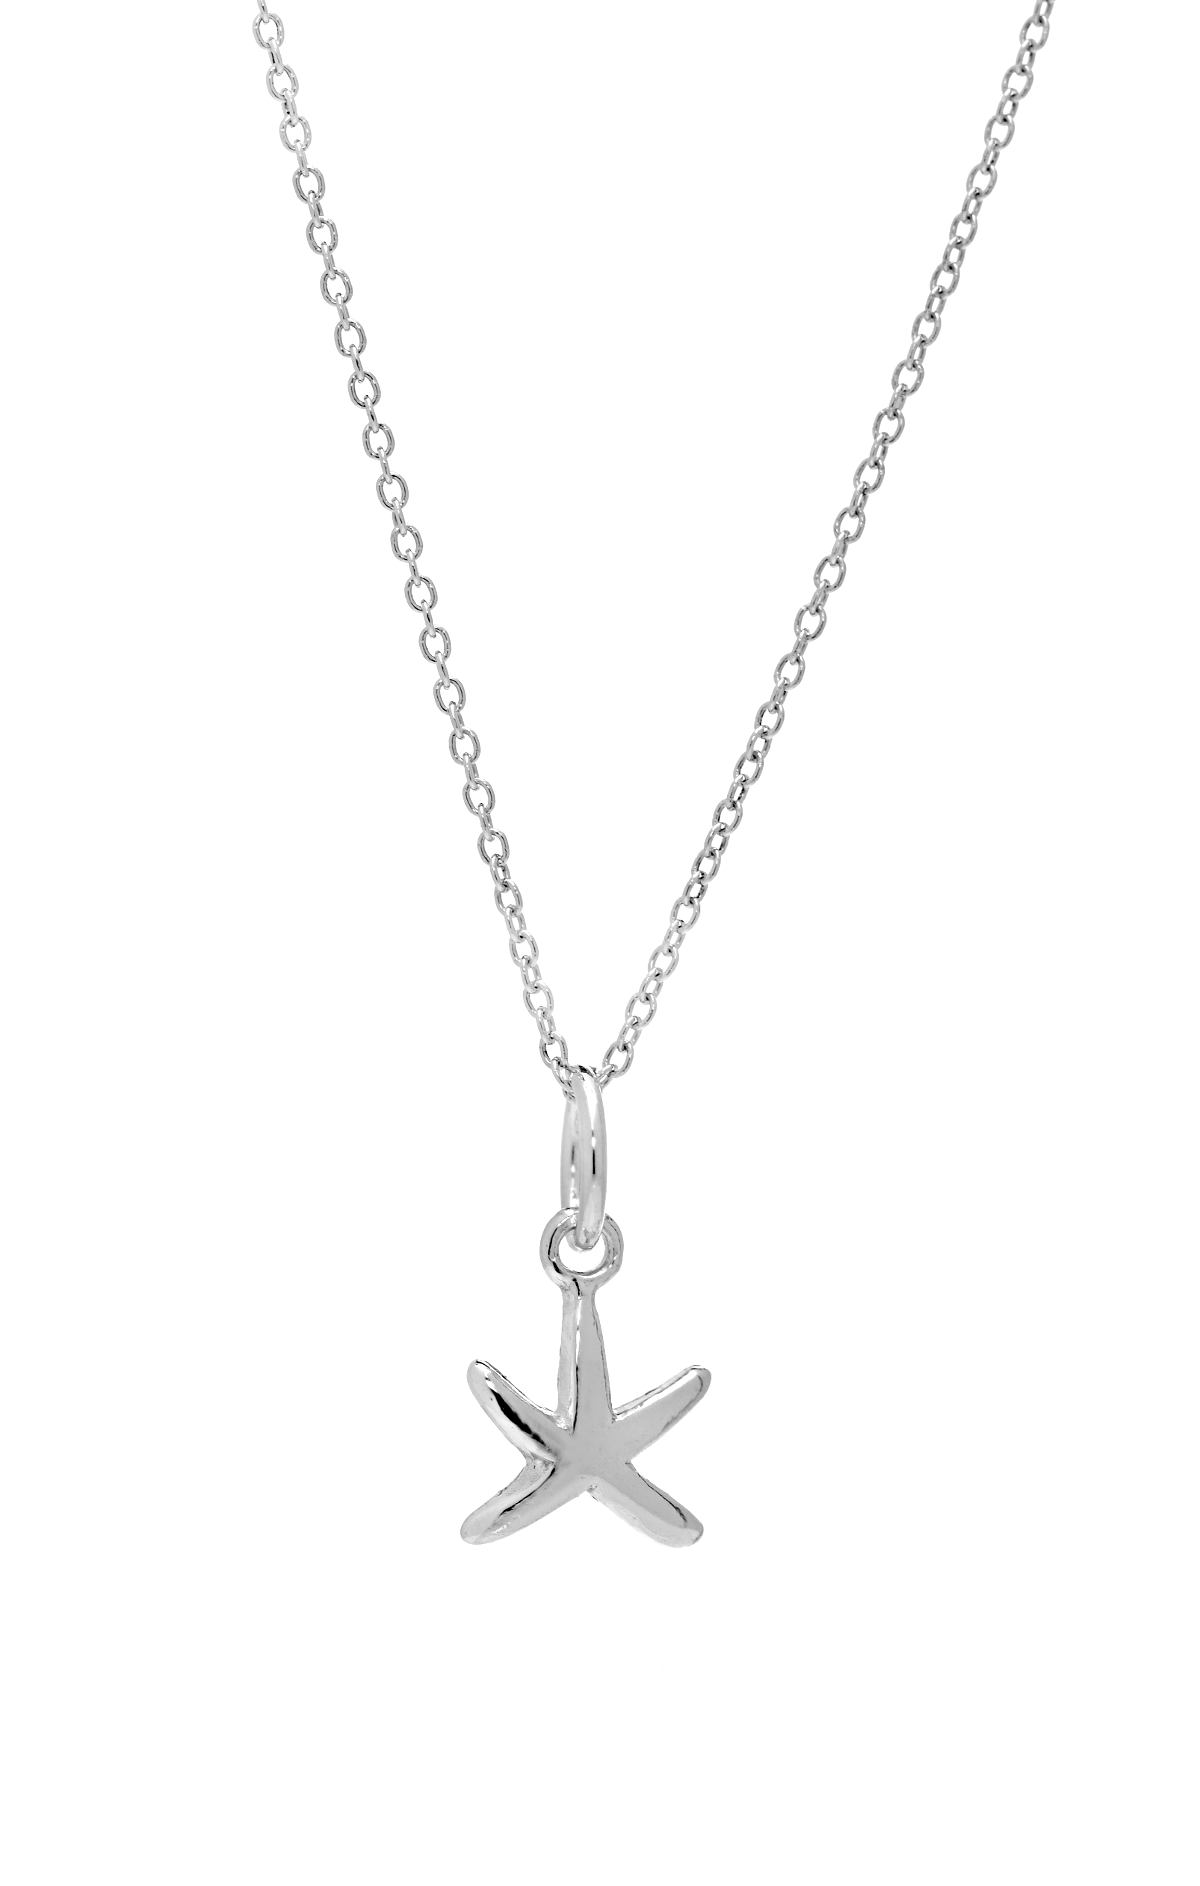 Buy petite starfish pendant necklace in sterling silver at anny small starfish pendant necklace in sterling silver anny gabriella ny aloadofball Choice Image